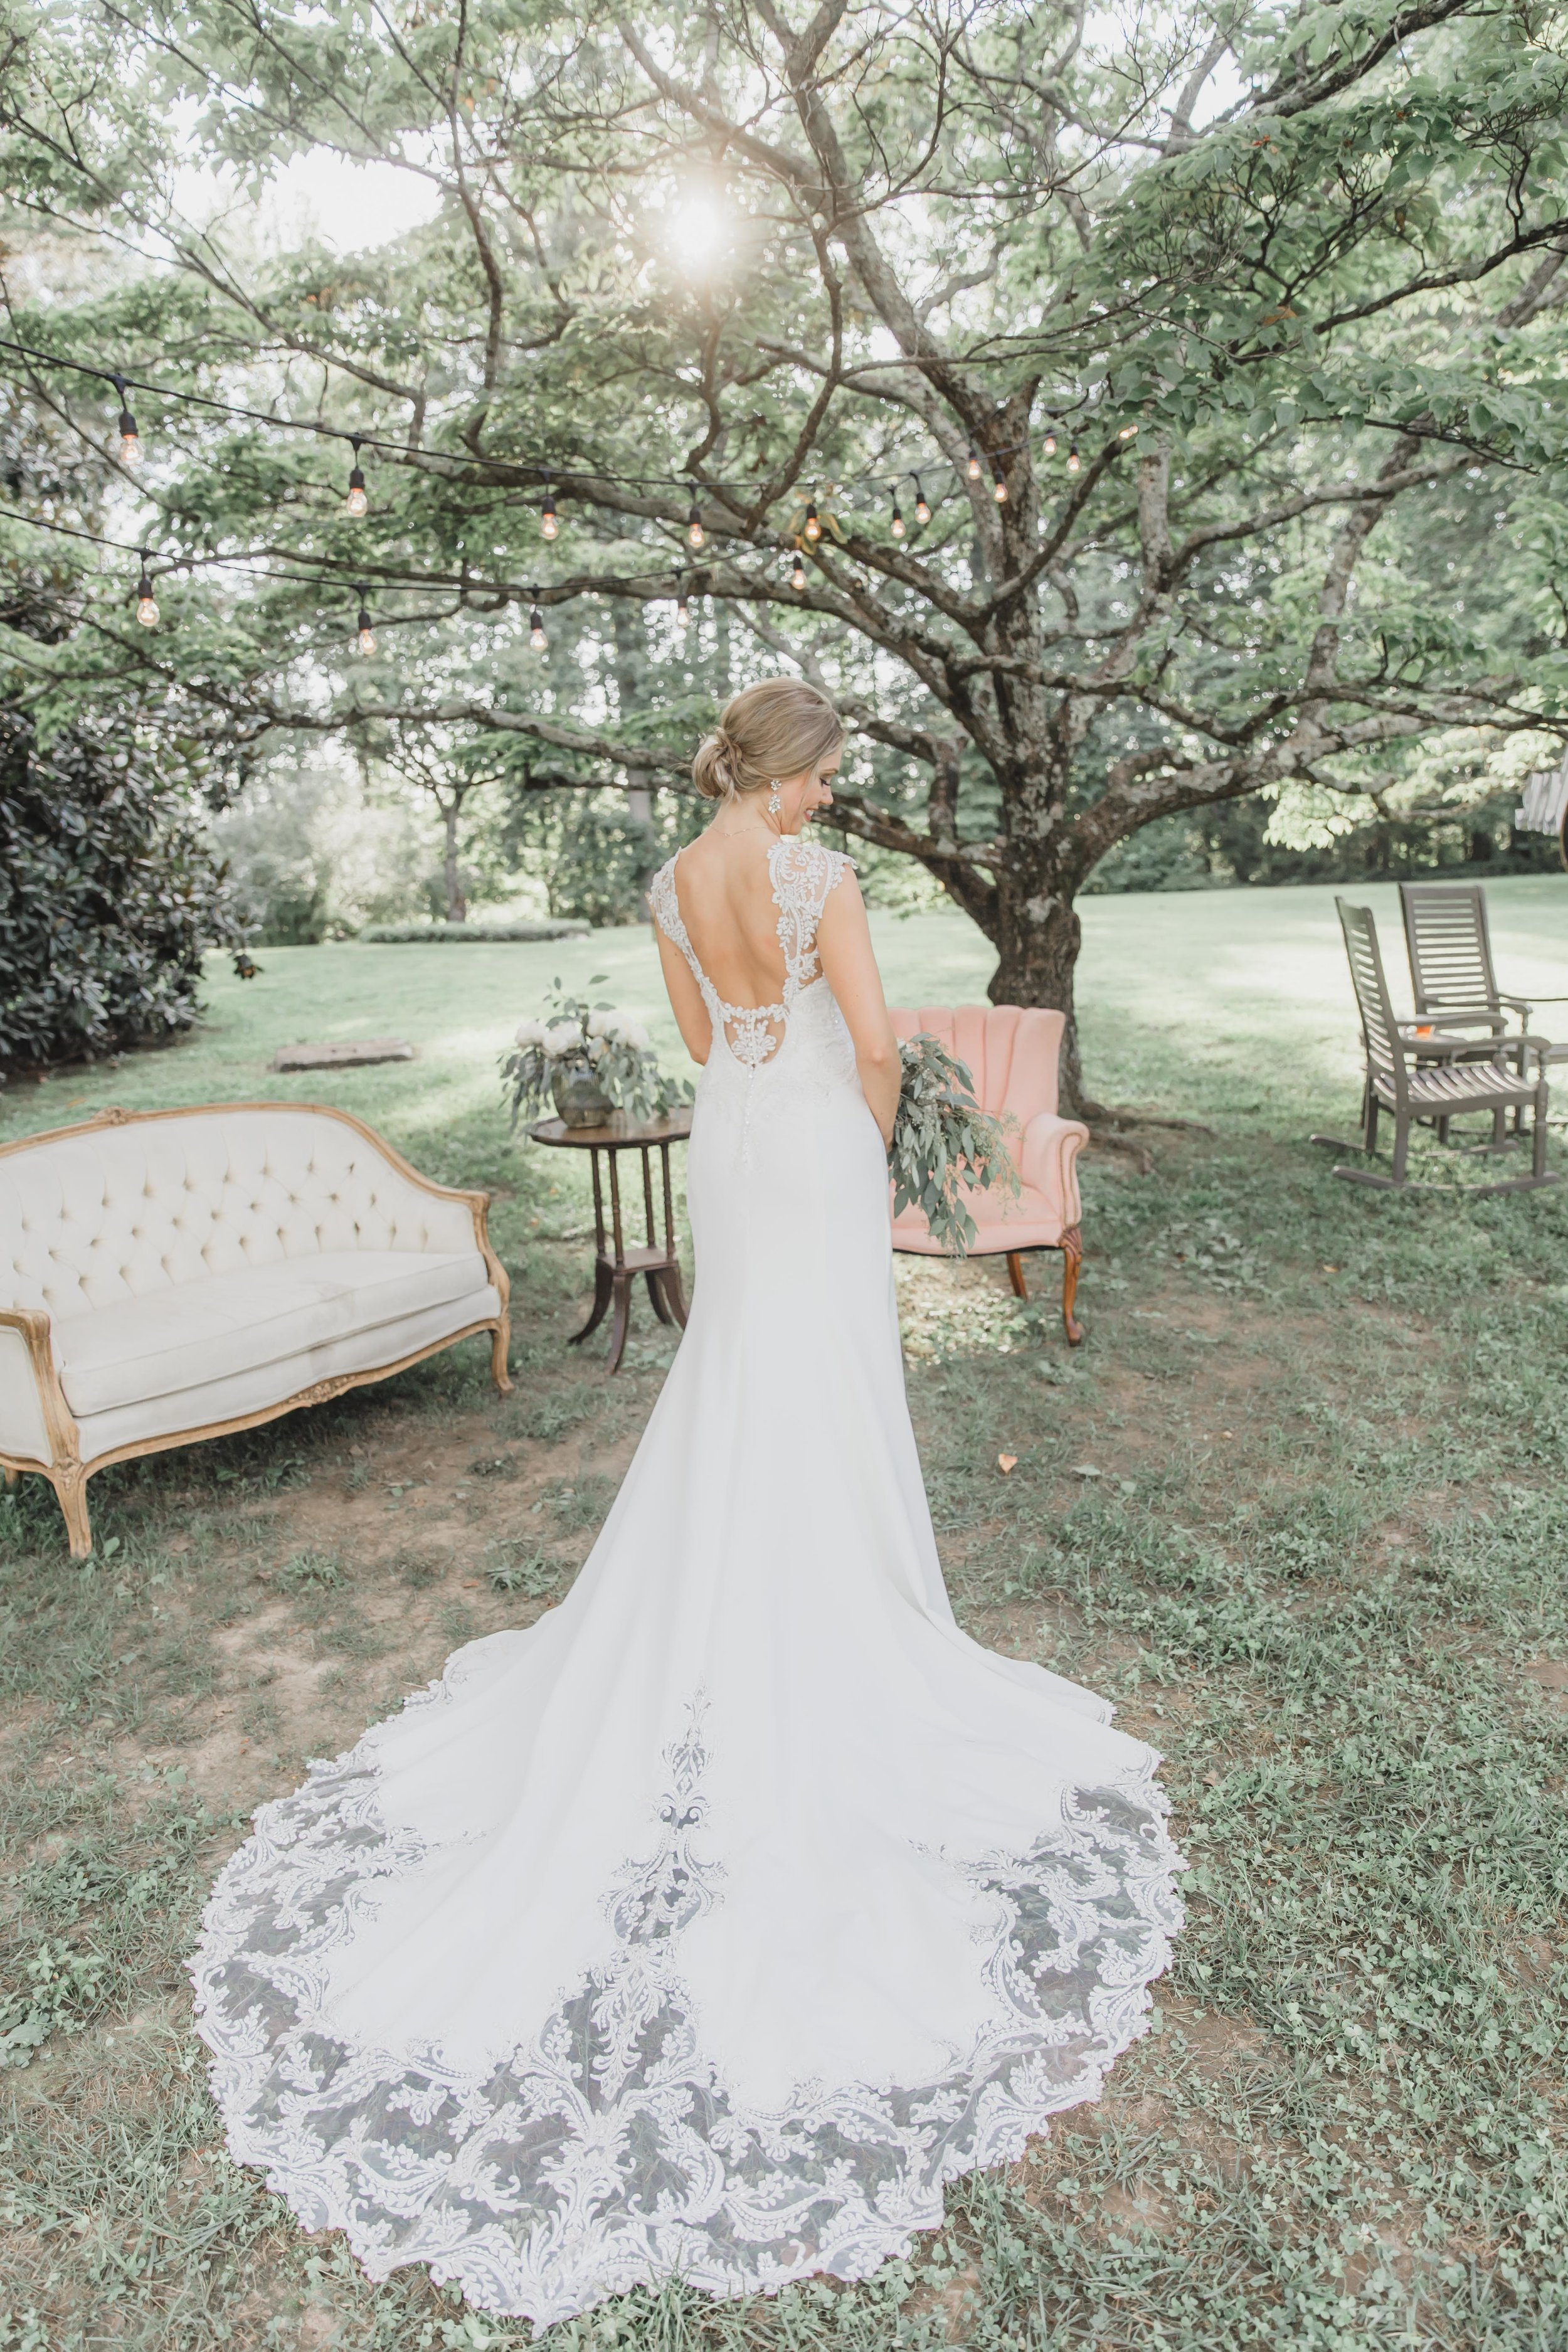 Seven Springs Venue // Darling Moments Photography